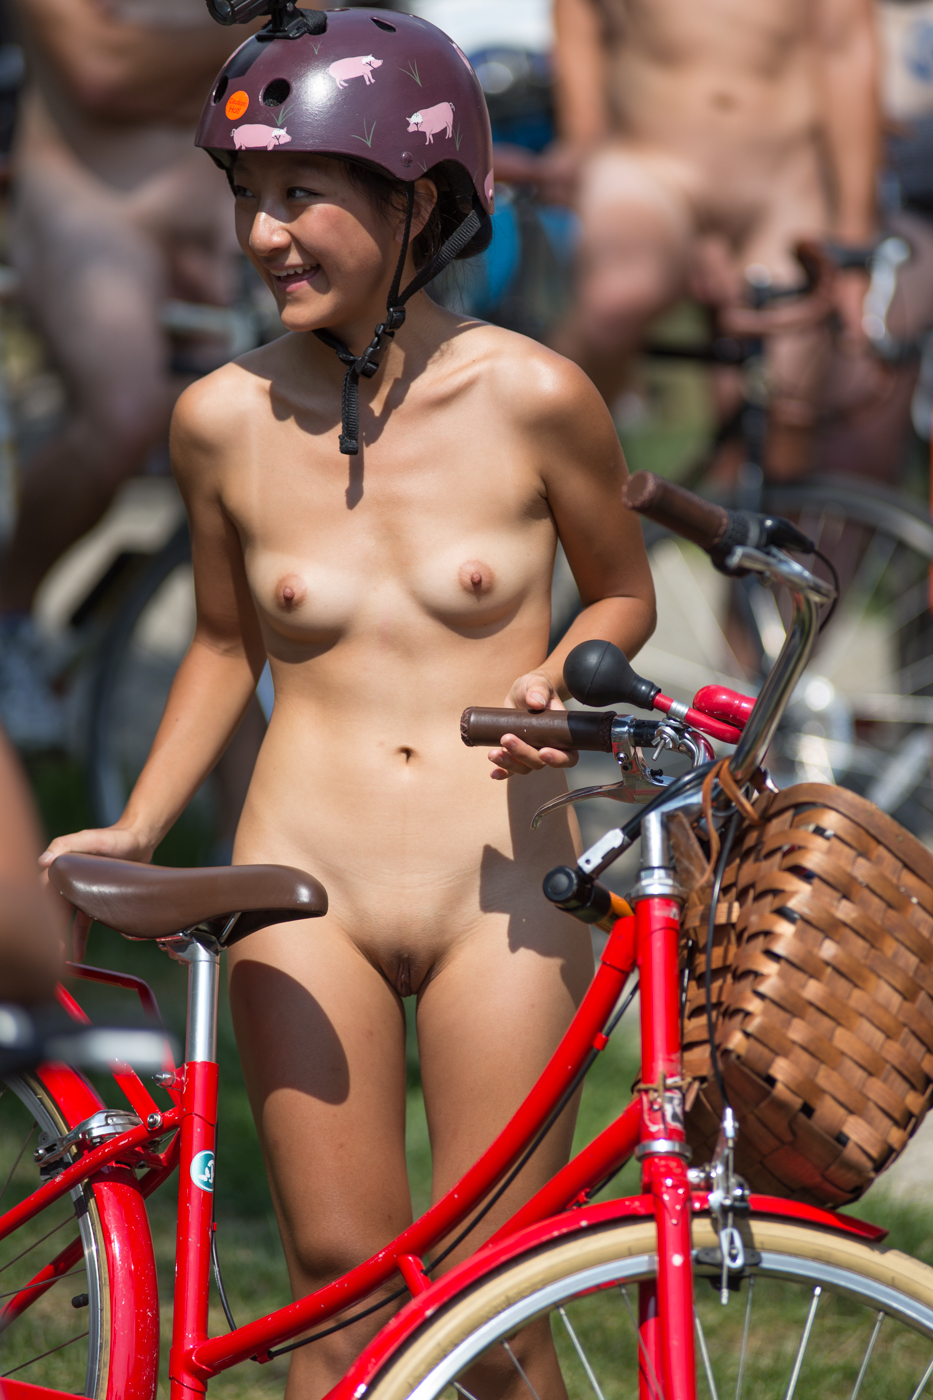 Are hot naked girls on bikes riding hairy fuck picture really